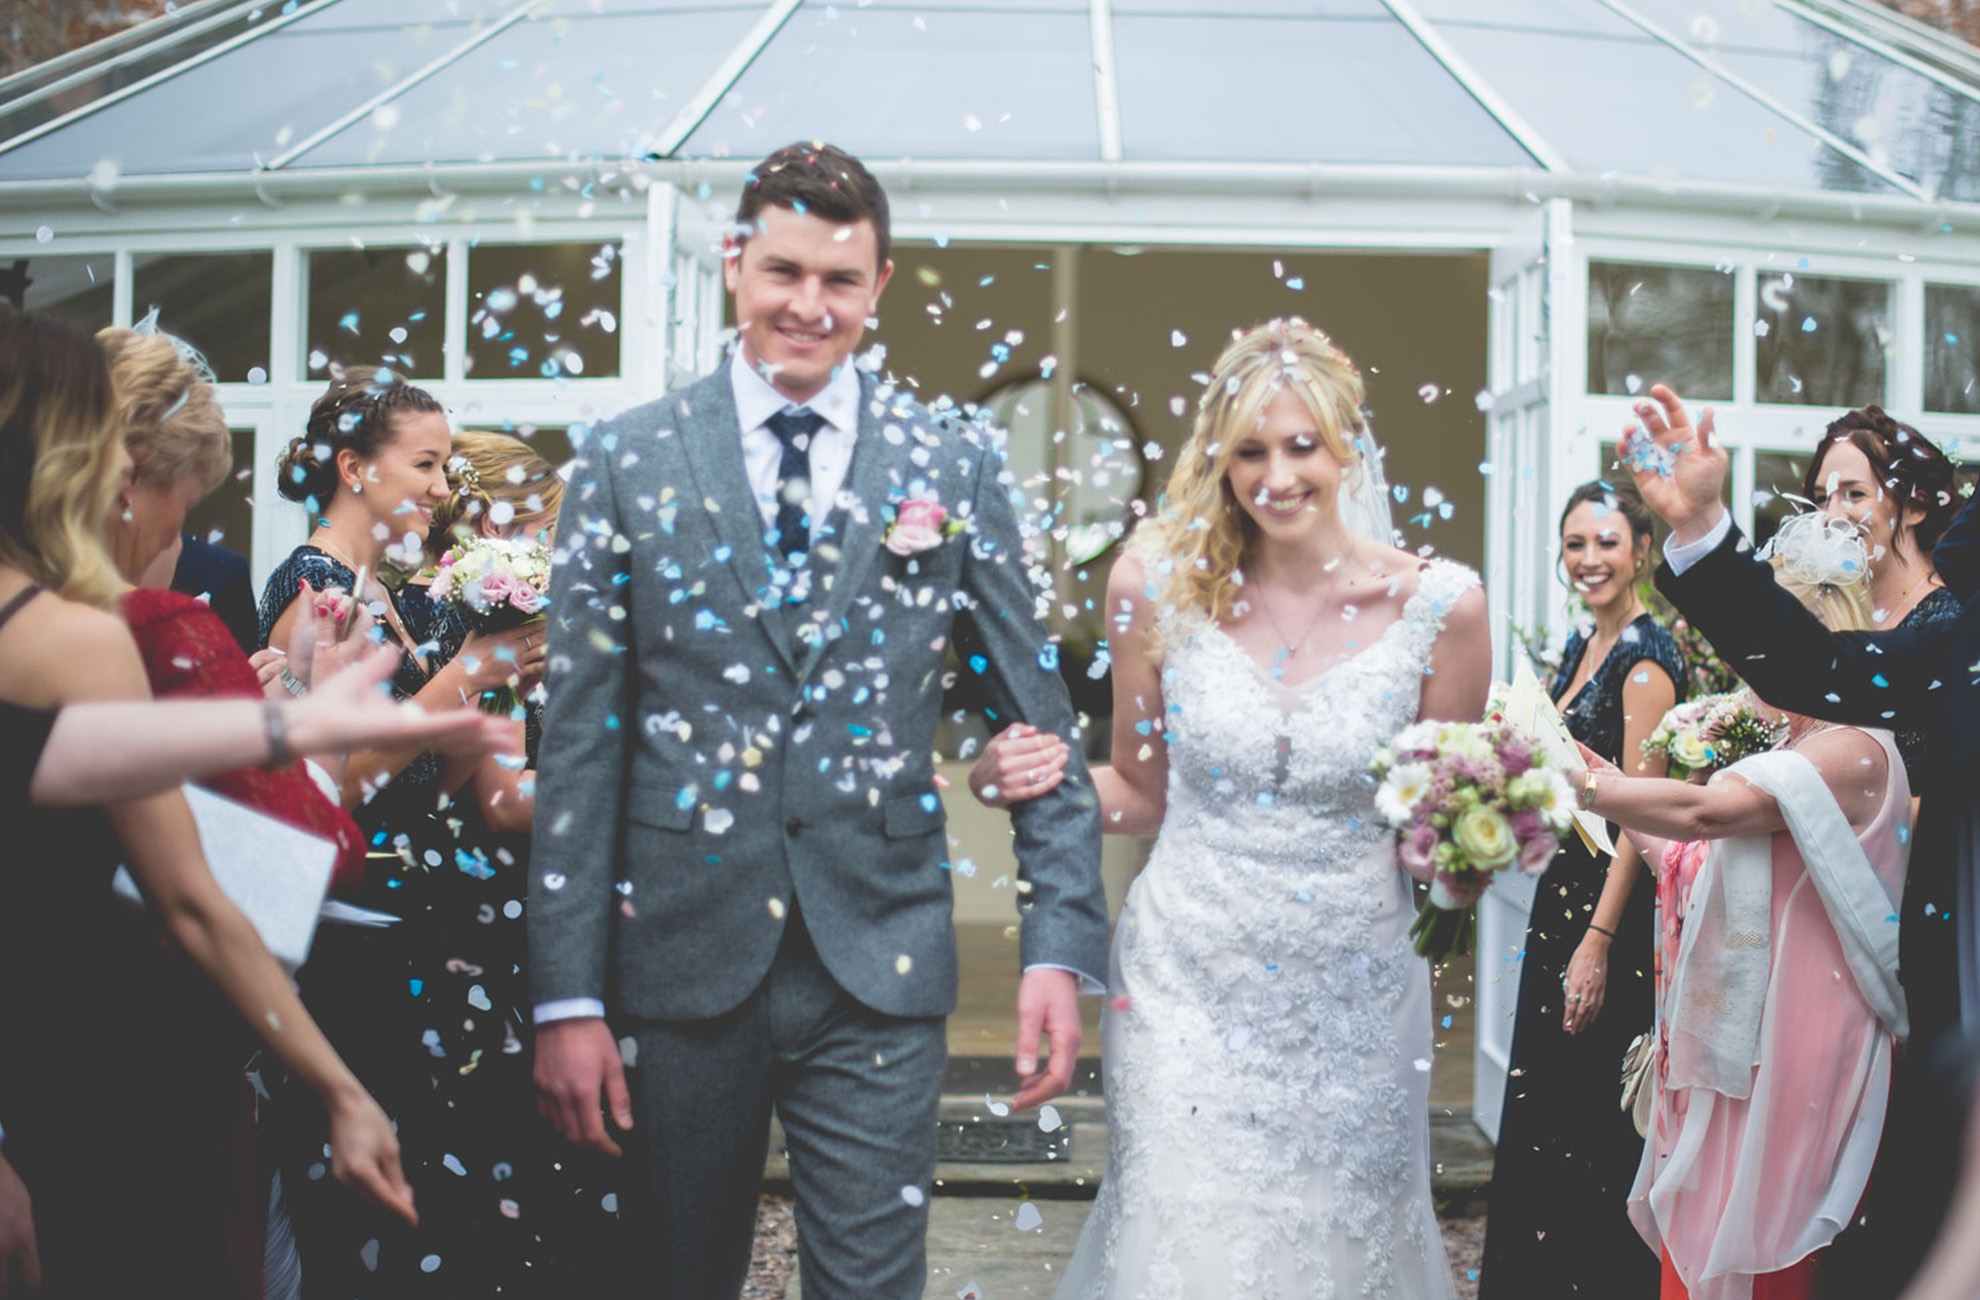 A bride and groom are showered in wedding confetti by guests after their wedding ceremony at Combermere Abbey